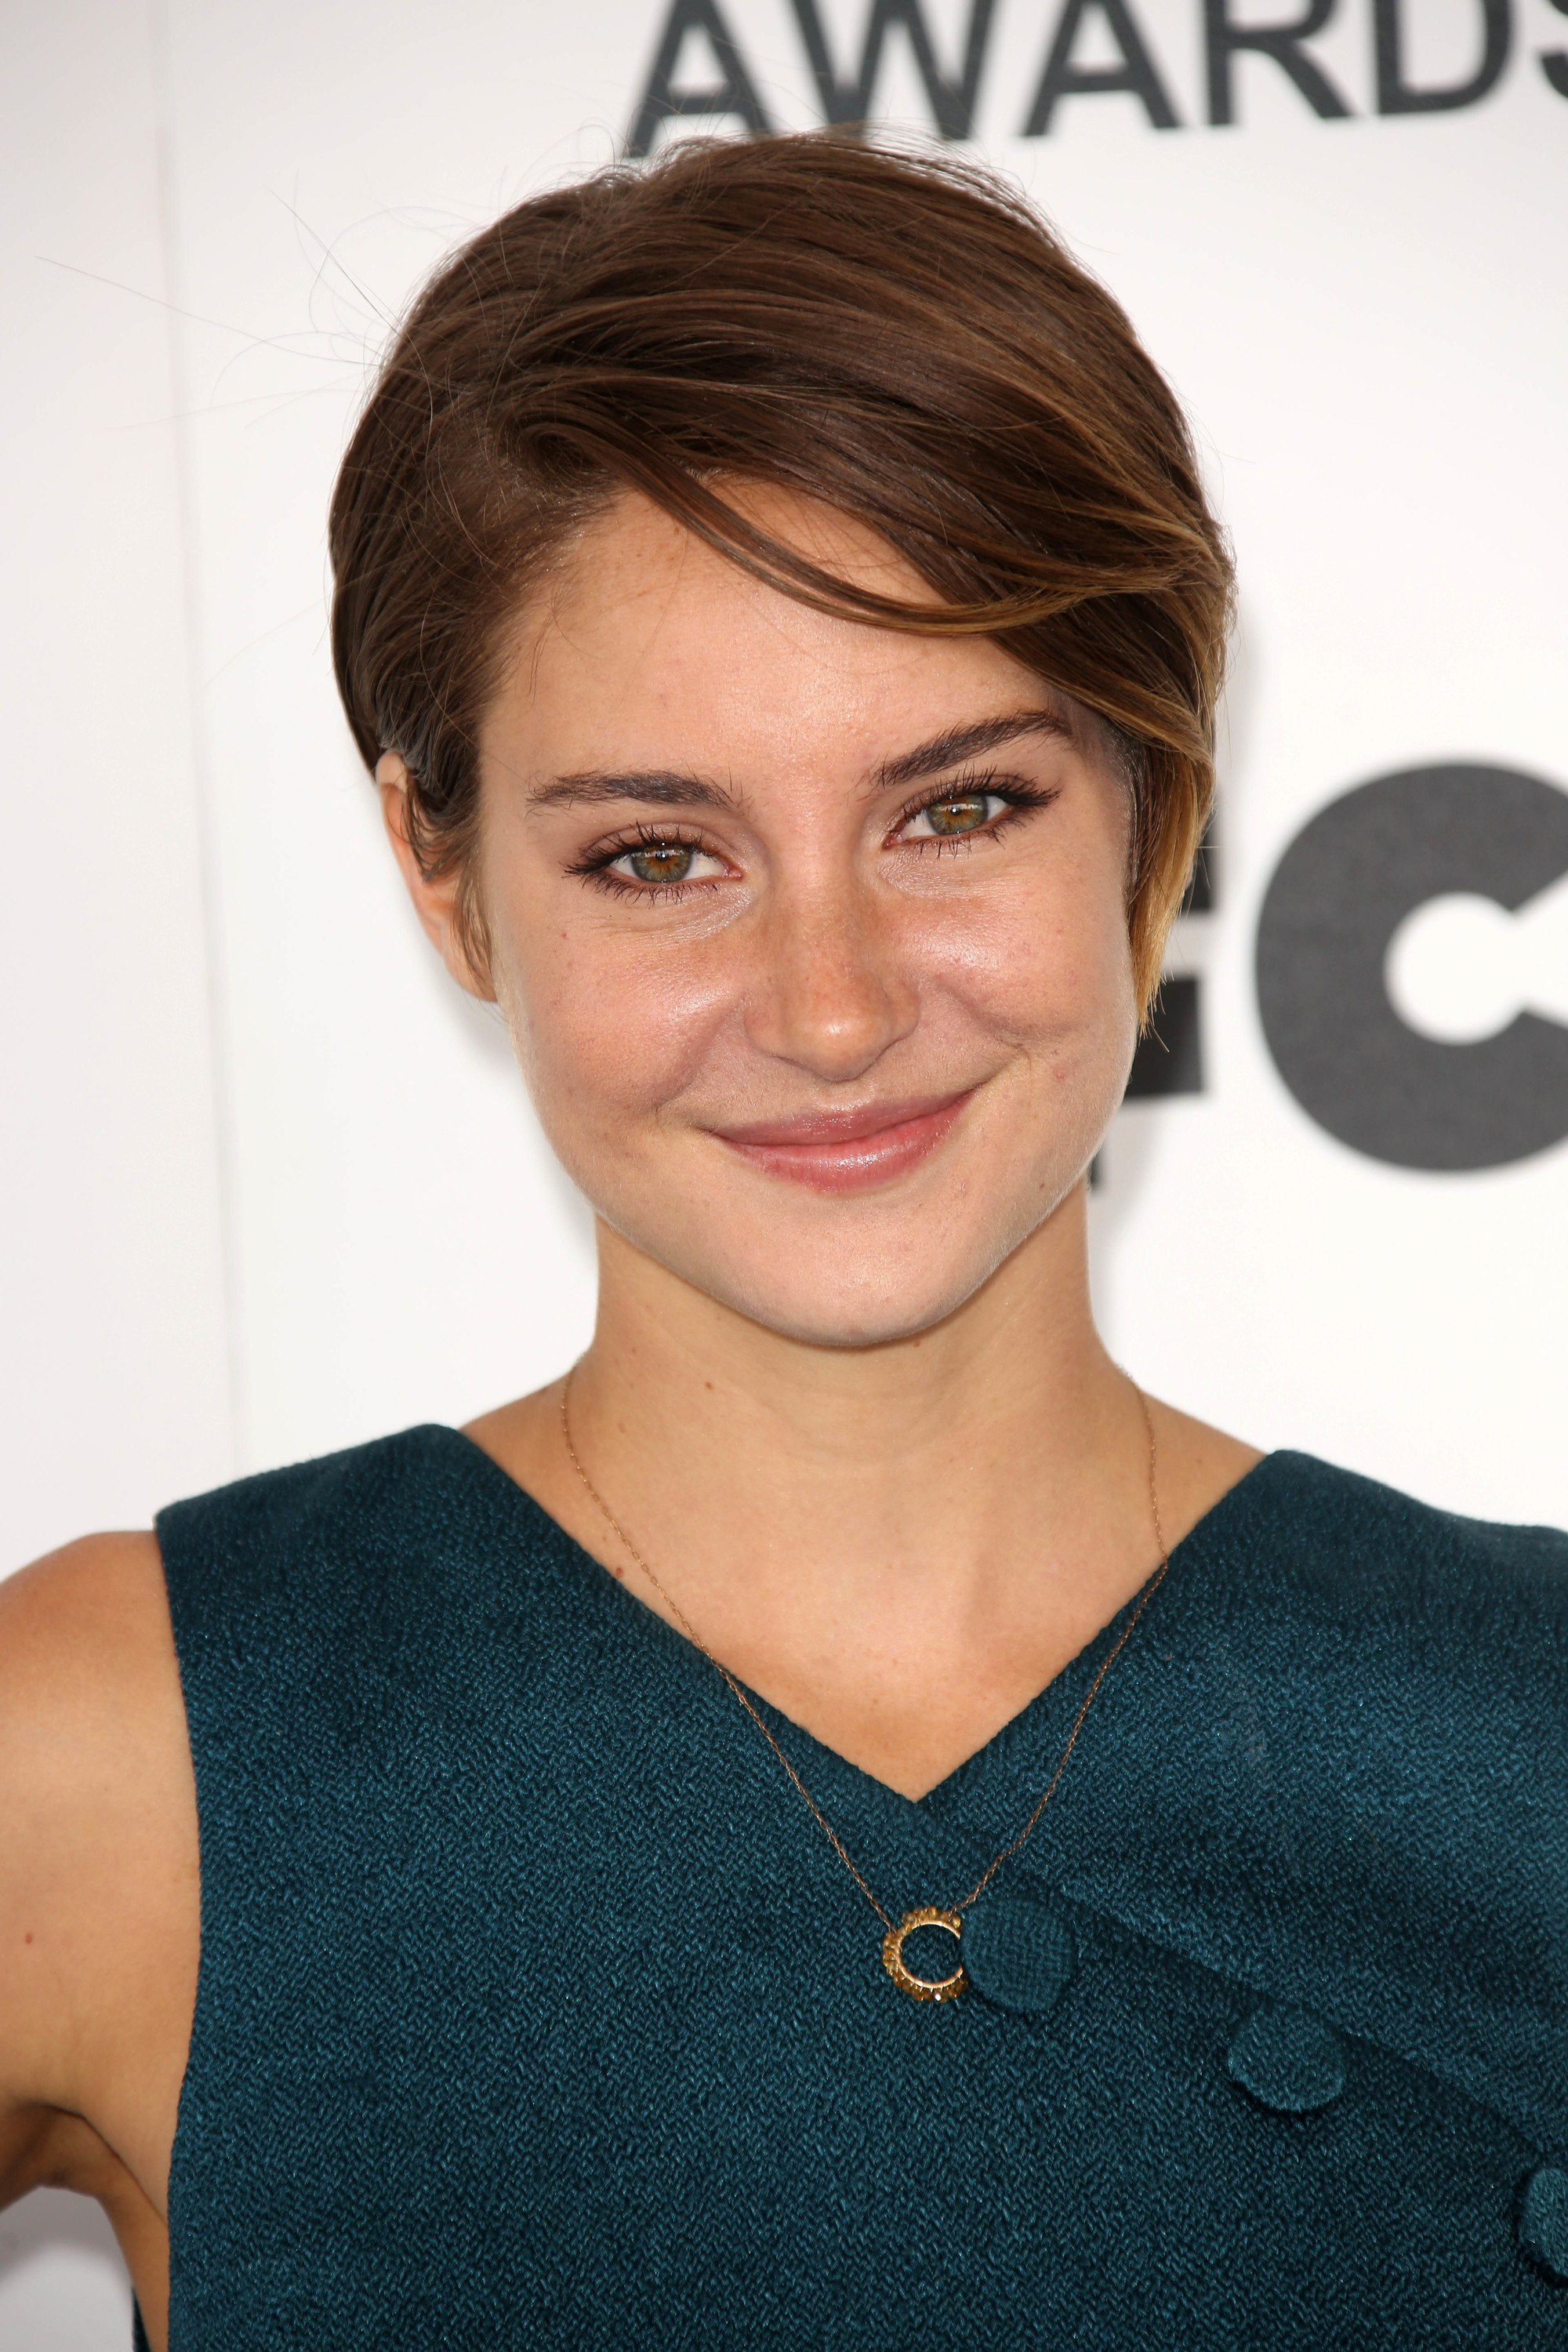 actress shailene woodley wearing a teal dress with brunette pixie cut hair